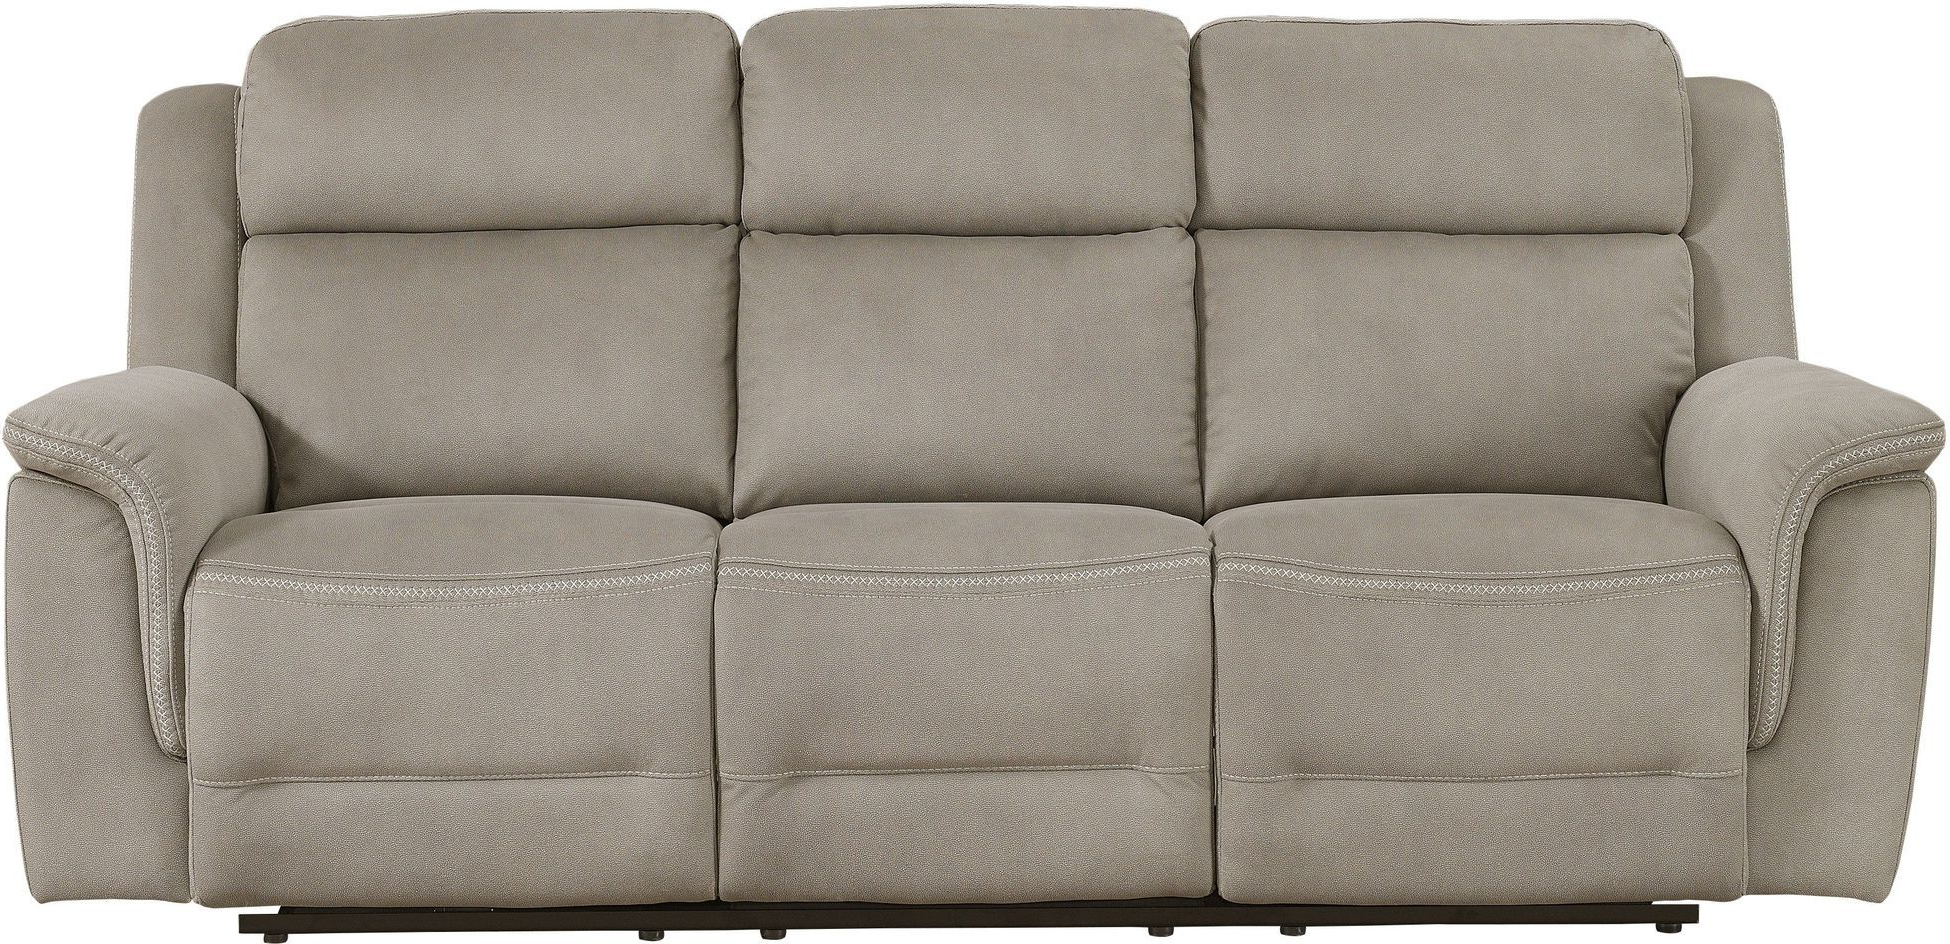 Best And Newest Power Reclining Sofas Inside Prime Resources Noah Collection Power Reclining Sofa With (View 6 of 15)